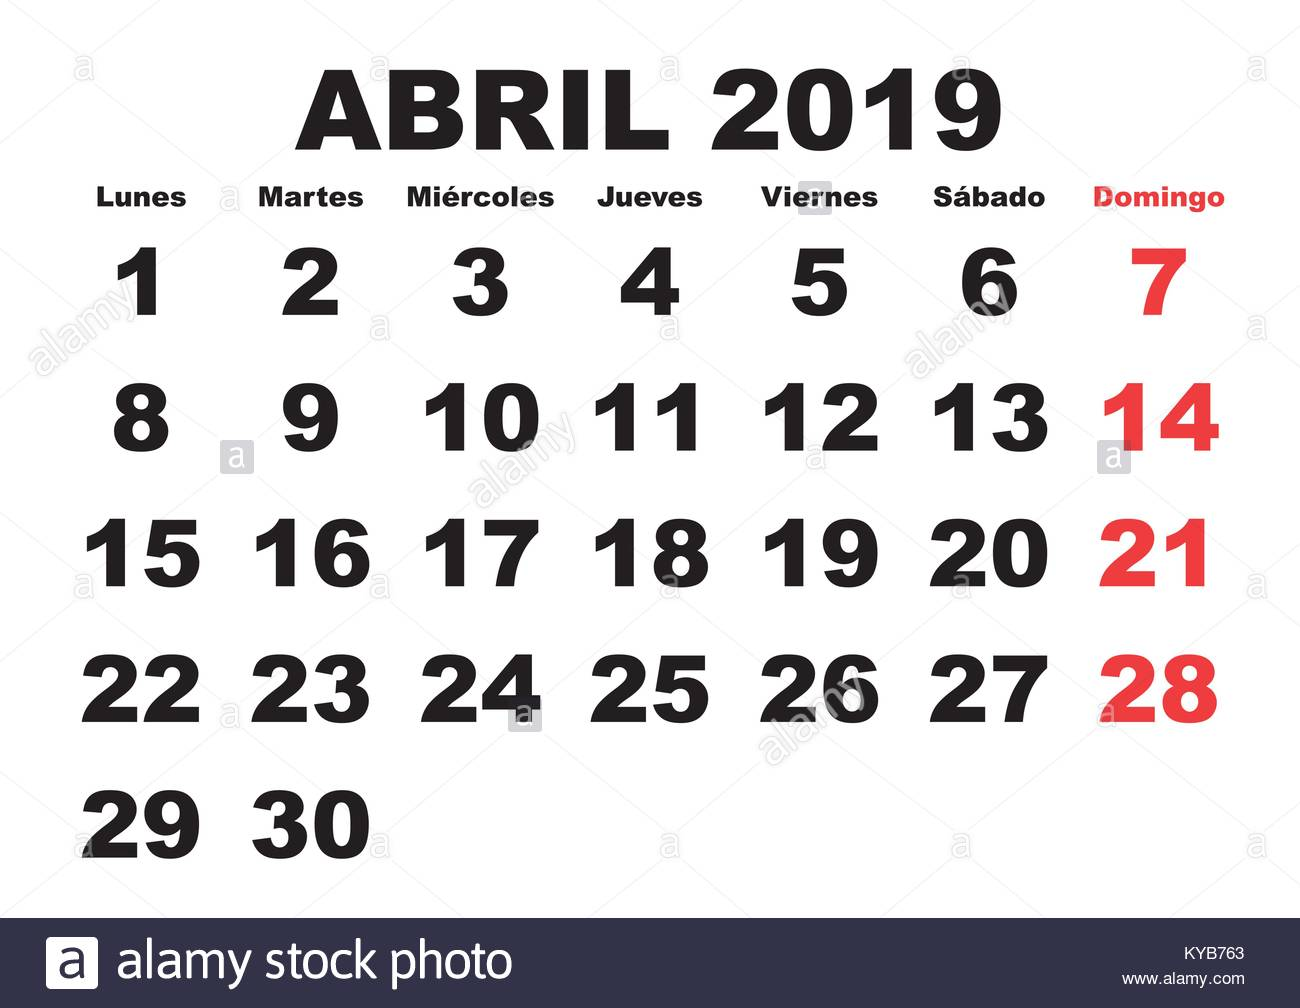 april month in a year 2019 wall calendar in spanish abril 2019